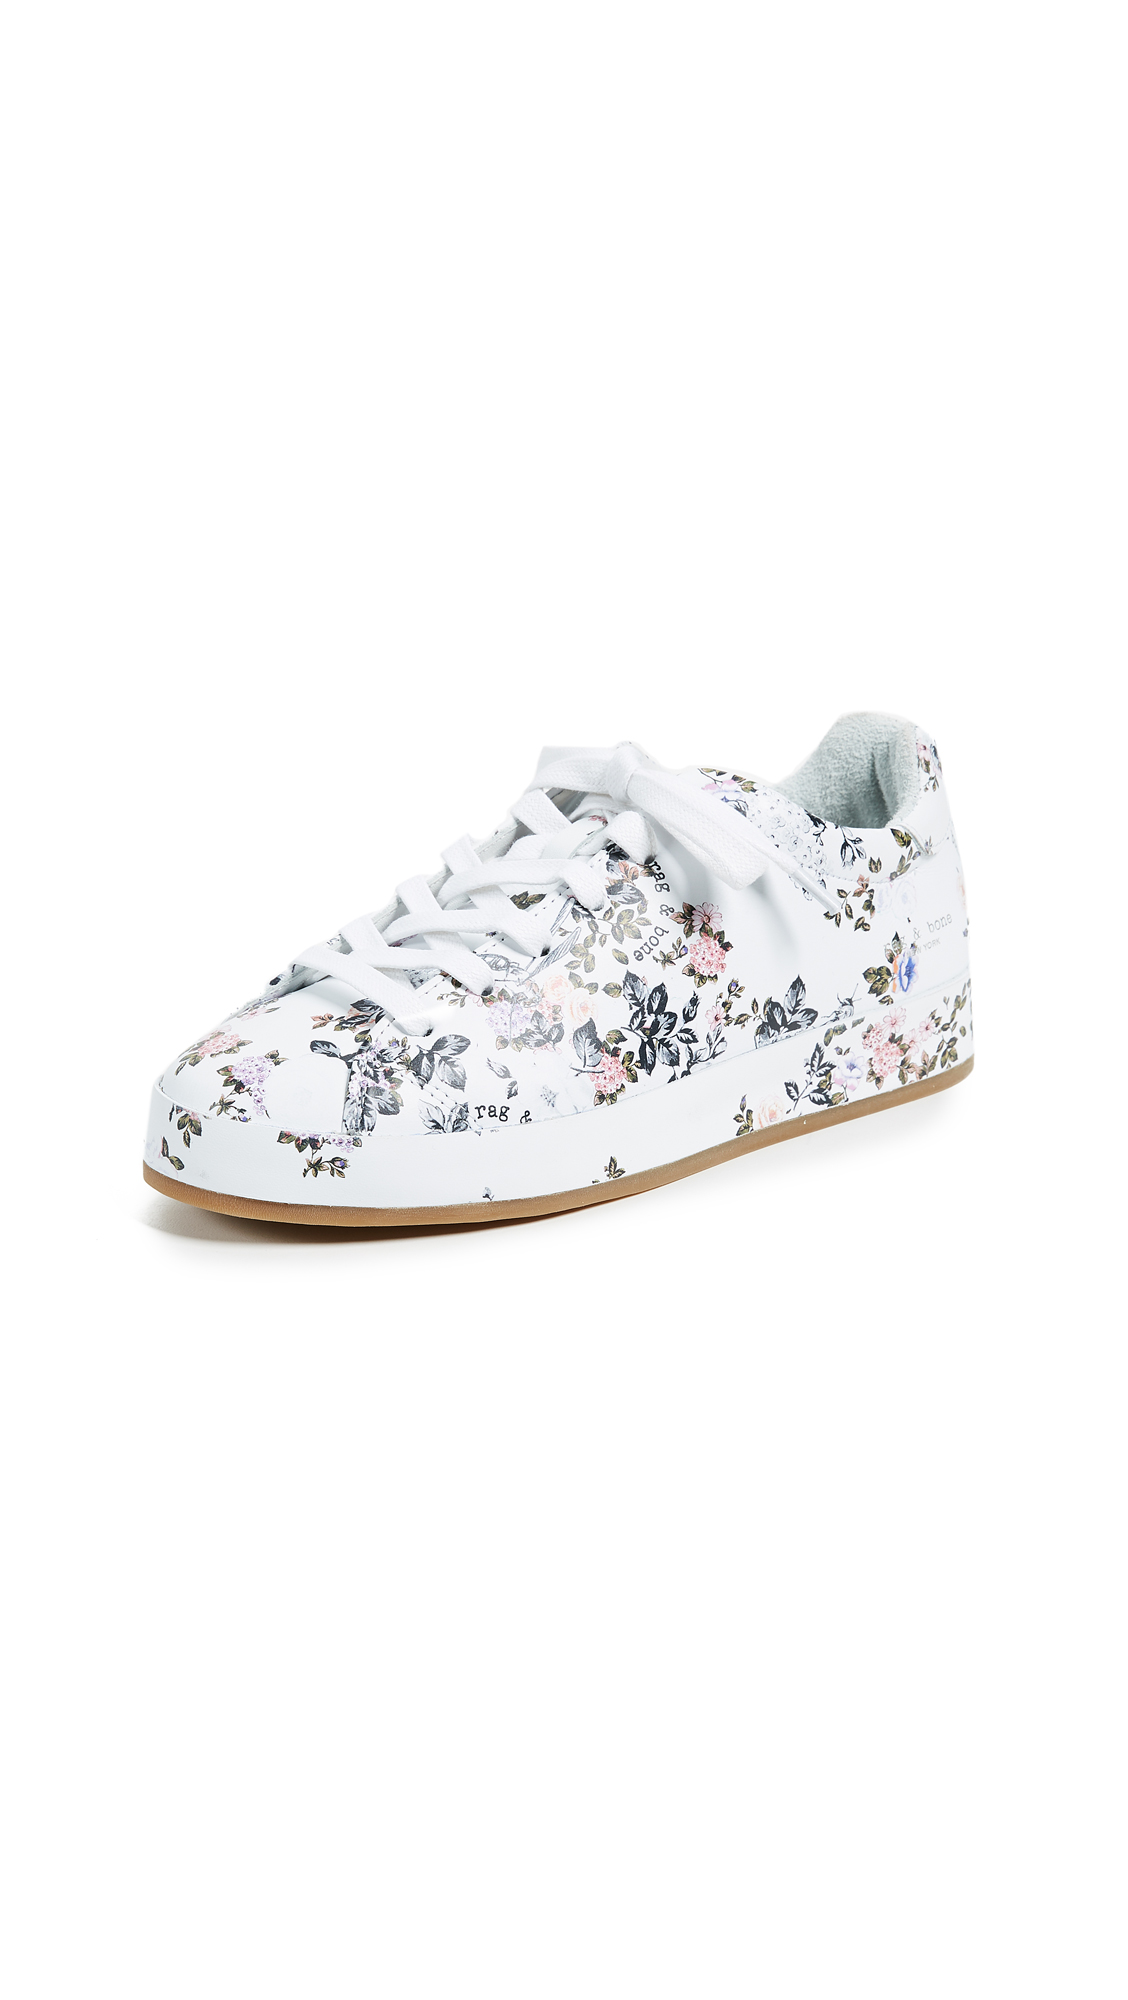 Rag & Bone RB1 Low Sneakers - Garden Floral